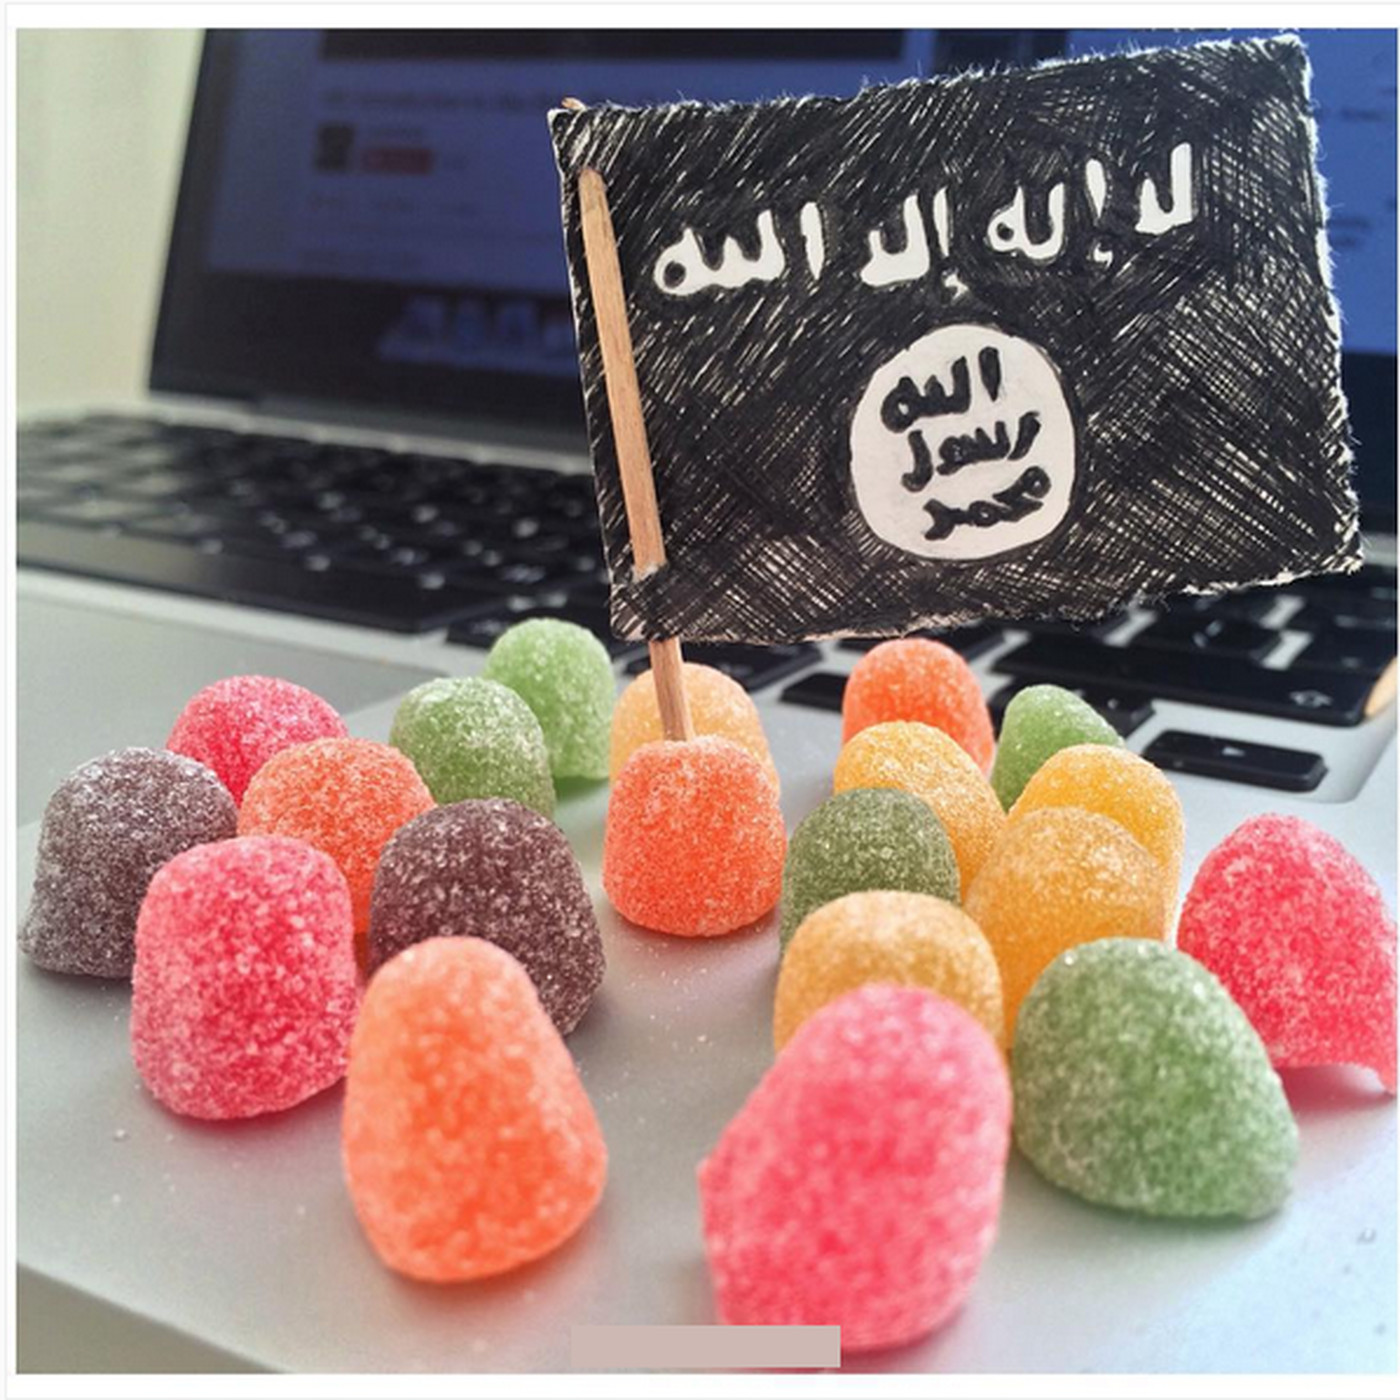 Best Food Hashtags 2020 Filtered extremism: how ISIS supporters use Instagram   The Verge